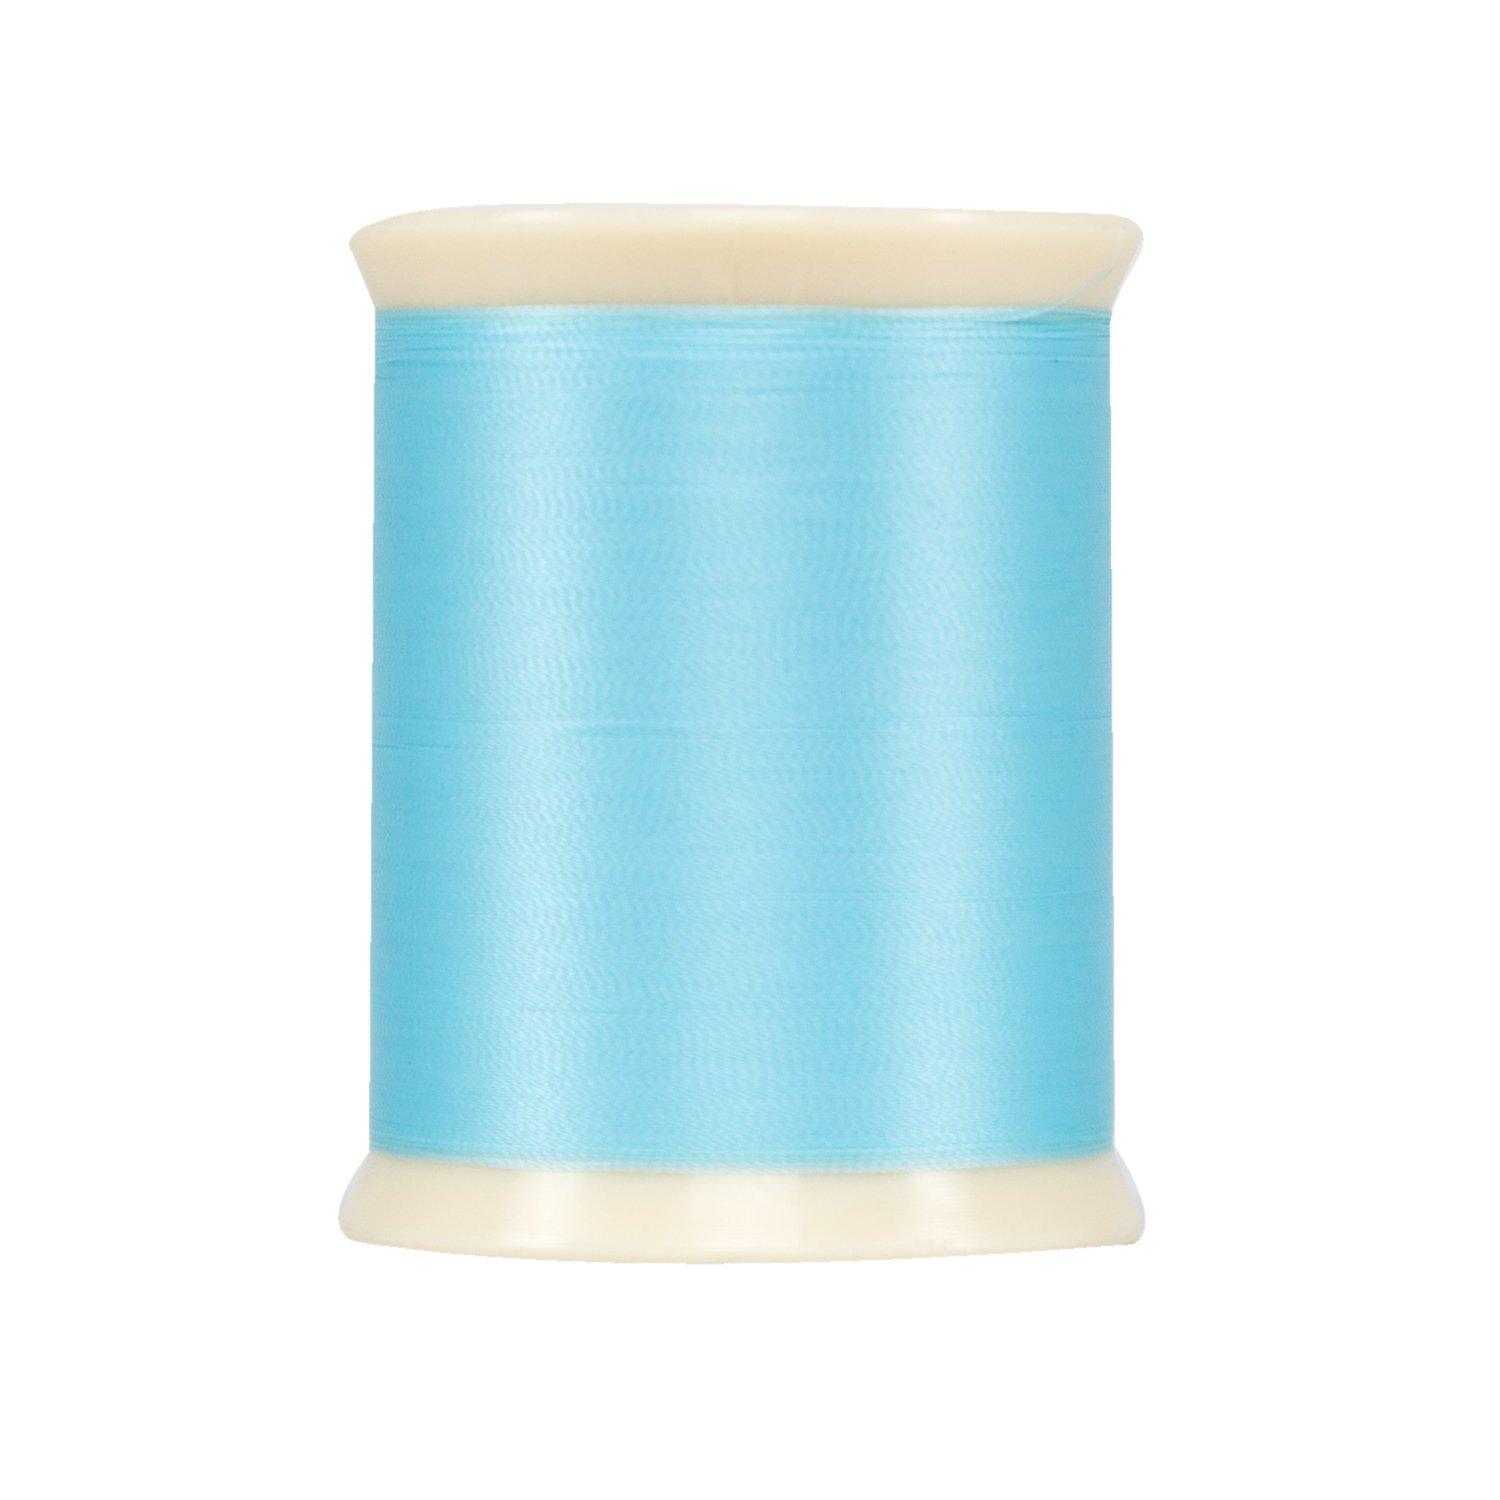 #7022 Light Turquoise MicroQuilter 800 yd spool